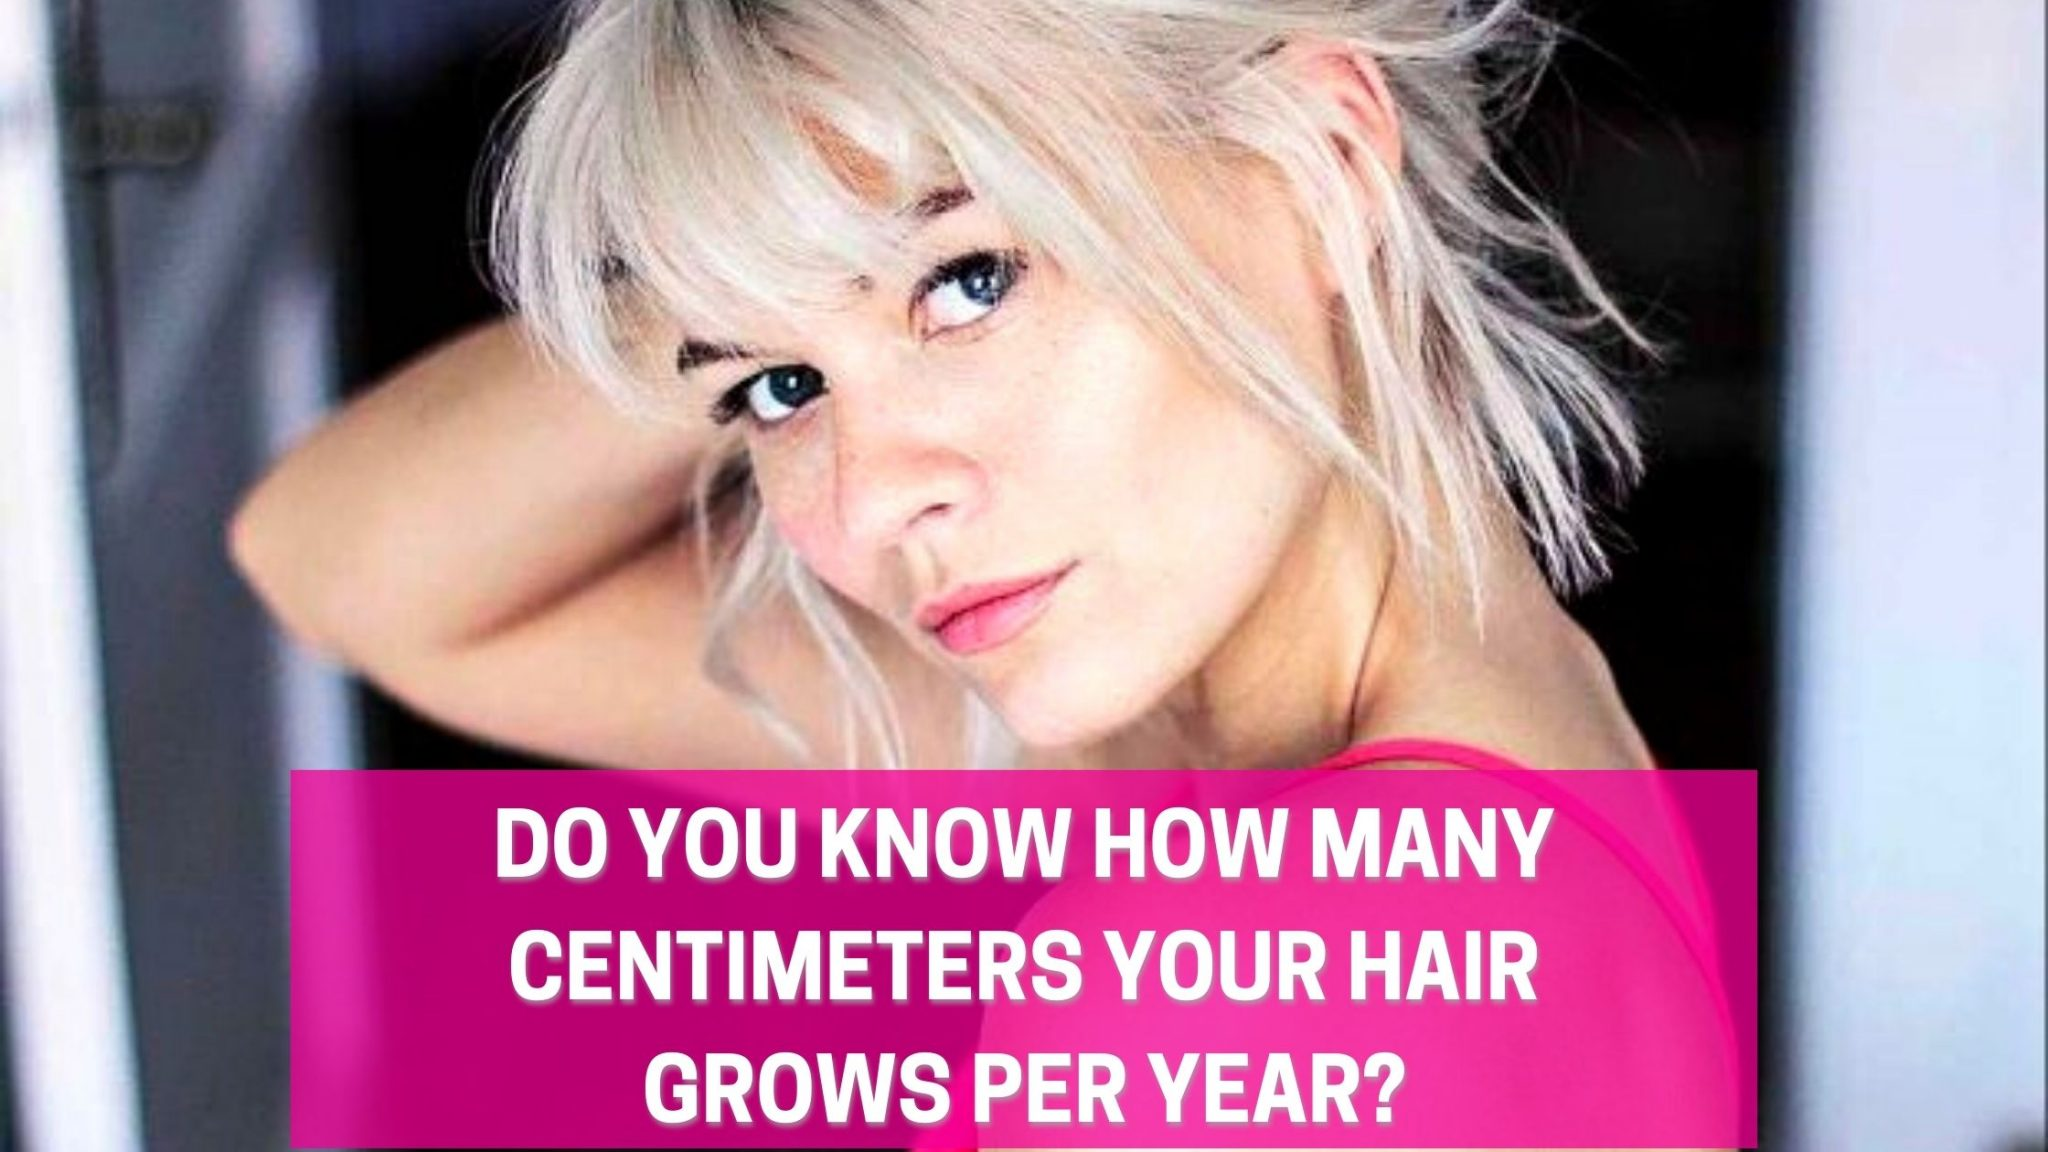 Do you know How many Centimeters Your Hair Grows Per Year?